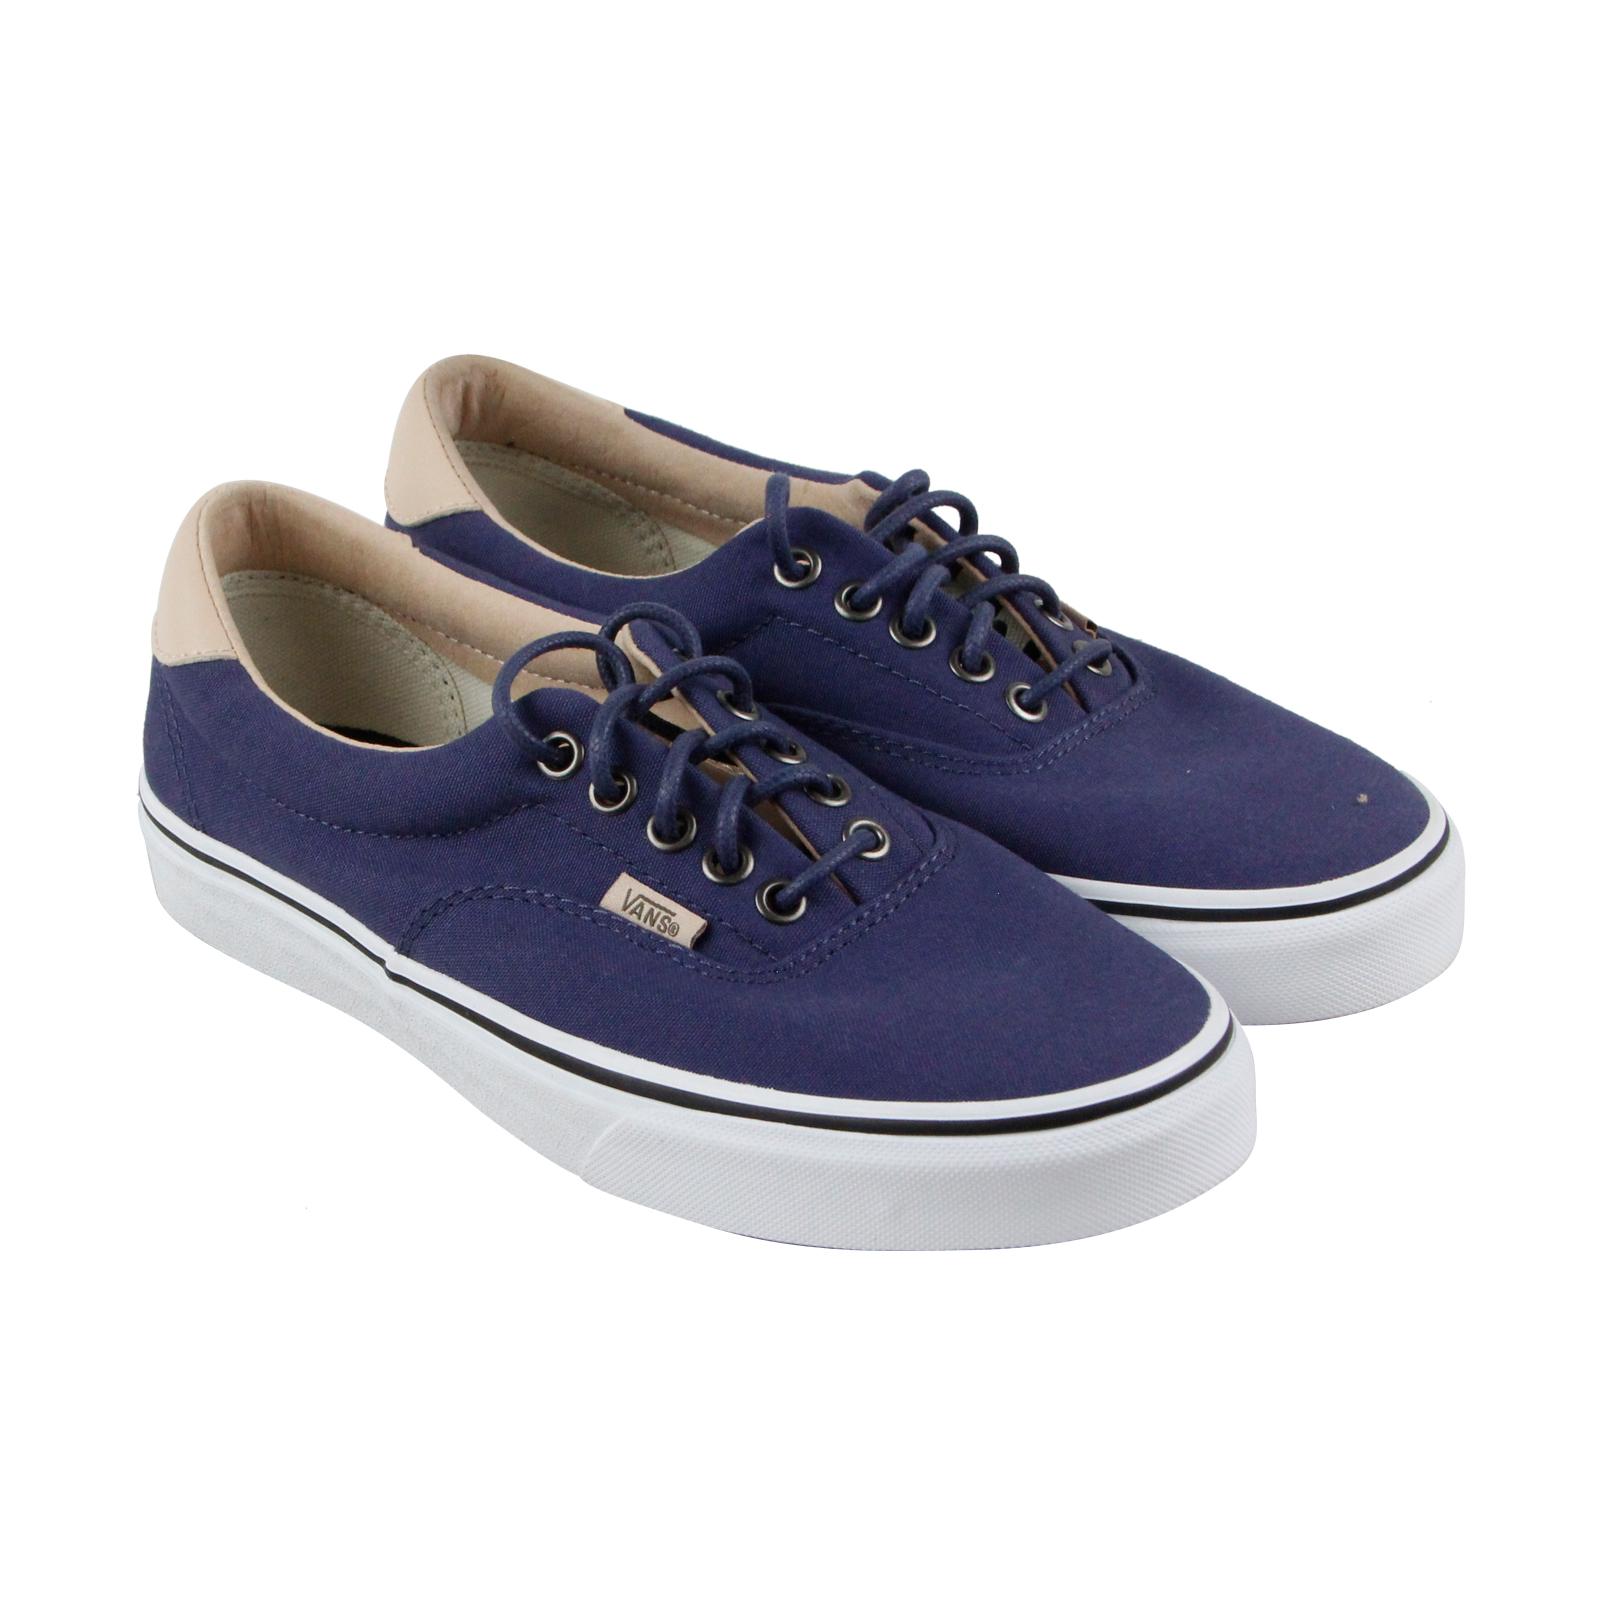 Vans Unisex Era 59 (Veggie Tan) Skate Shoe (8 B(M) US Women/ 6.5 D(M) US Men, (Veggie Tan) Crown Blue/ T)